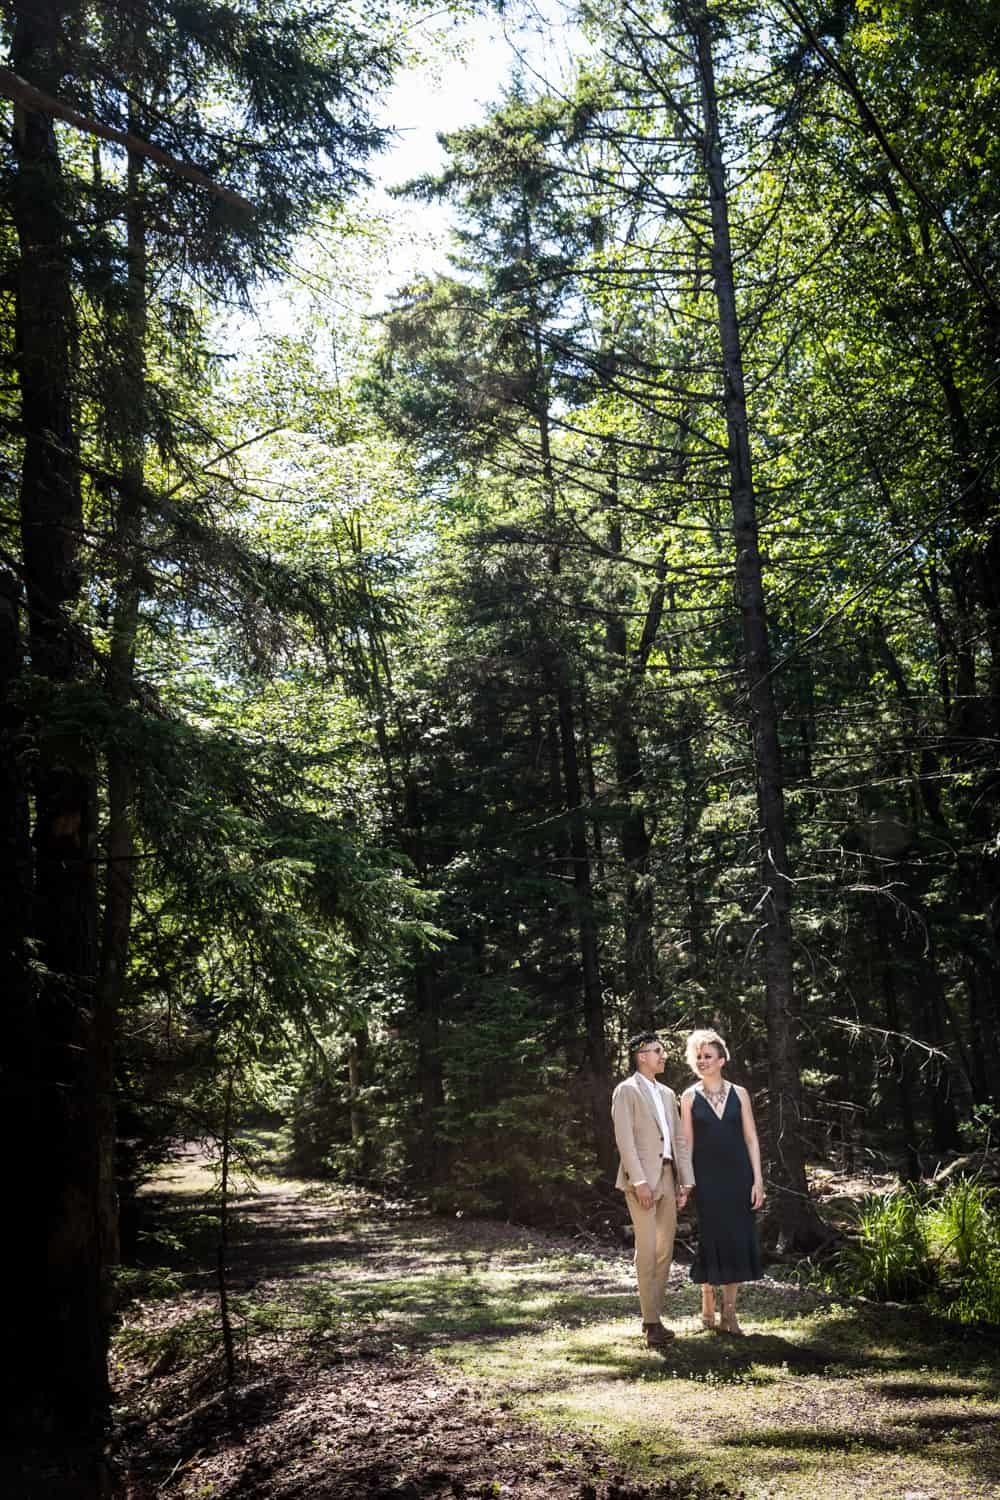 Mother and son walking in the woods during a family reunion portrait